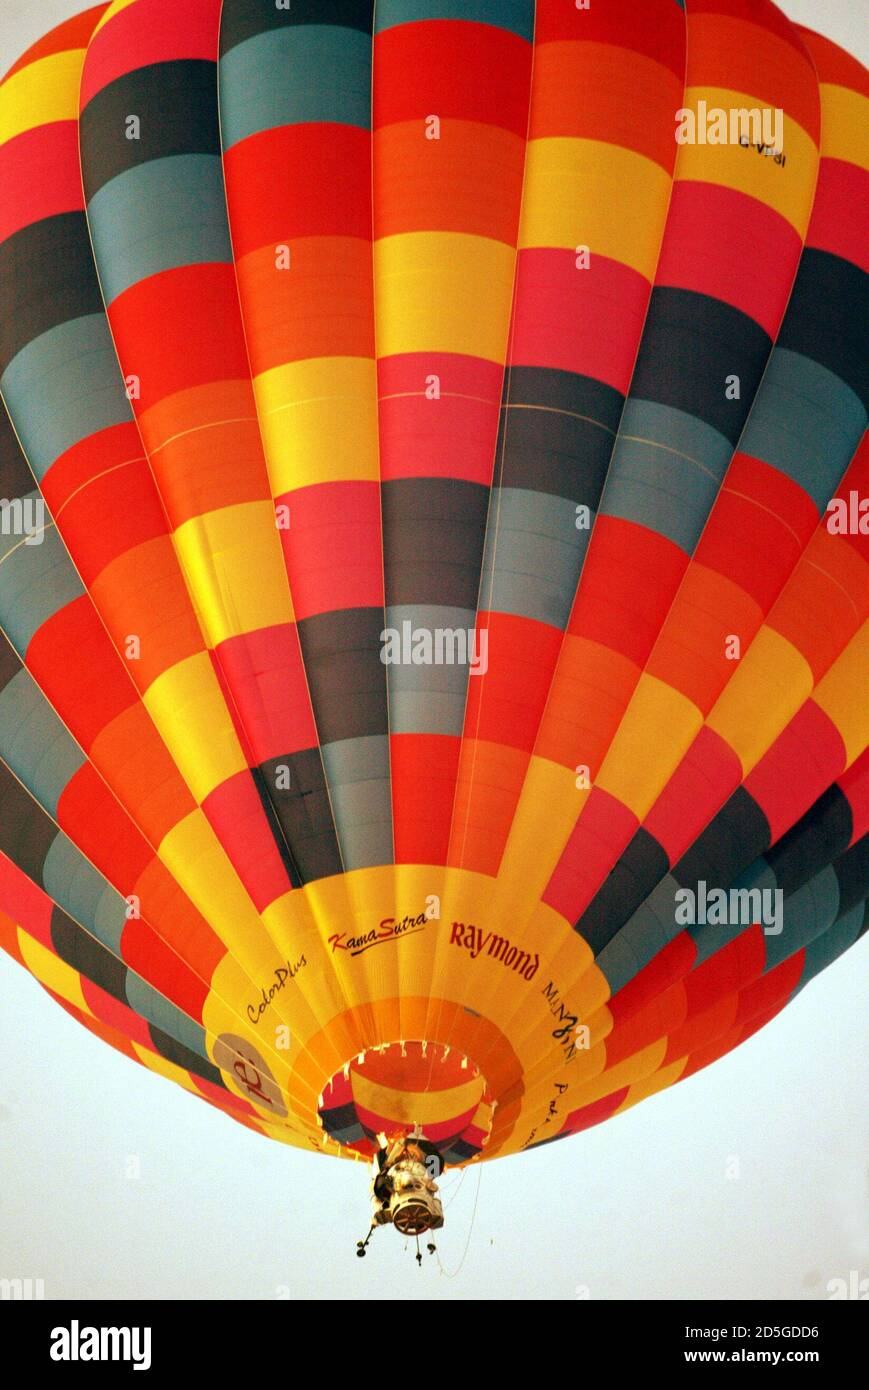 """Industrialist Vijaypat Singhania's hot air balloon takes off in Mumbai November 26, 2005. Singhania took off in his hot air balloon capsule in an effort to reach a height of 70,000 feet (above 21,336 meters) above sea level on Saturday, part of an attempt to break the existing world record set for """"High altitude in hot air balloon."""" The current record is held by Per Lindstrand, who reached a height of 64,997 feet (19,811 meters) in Plano, Texas, on June 6, 1988. REUTERS/Punit Paranjpe Banque D'Images"""